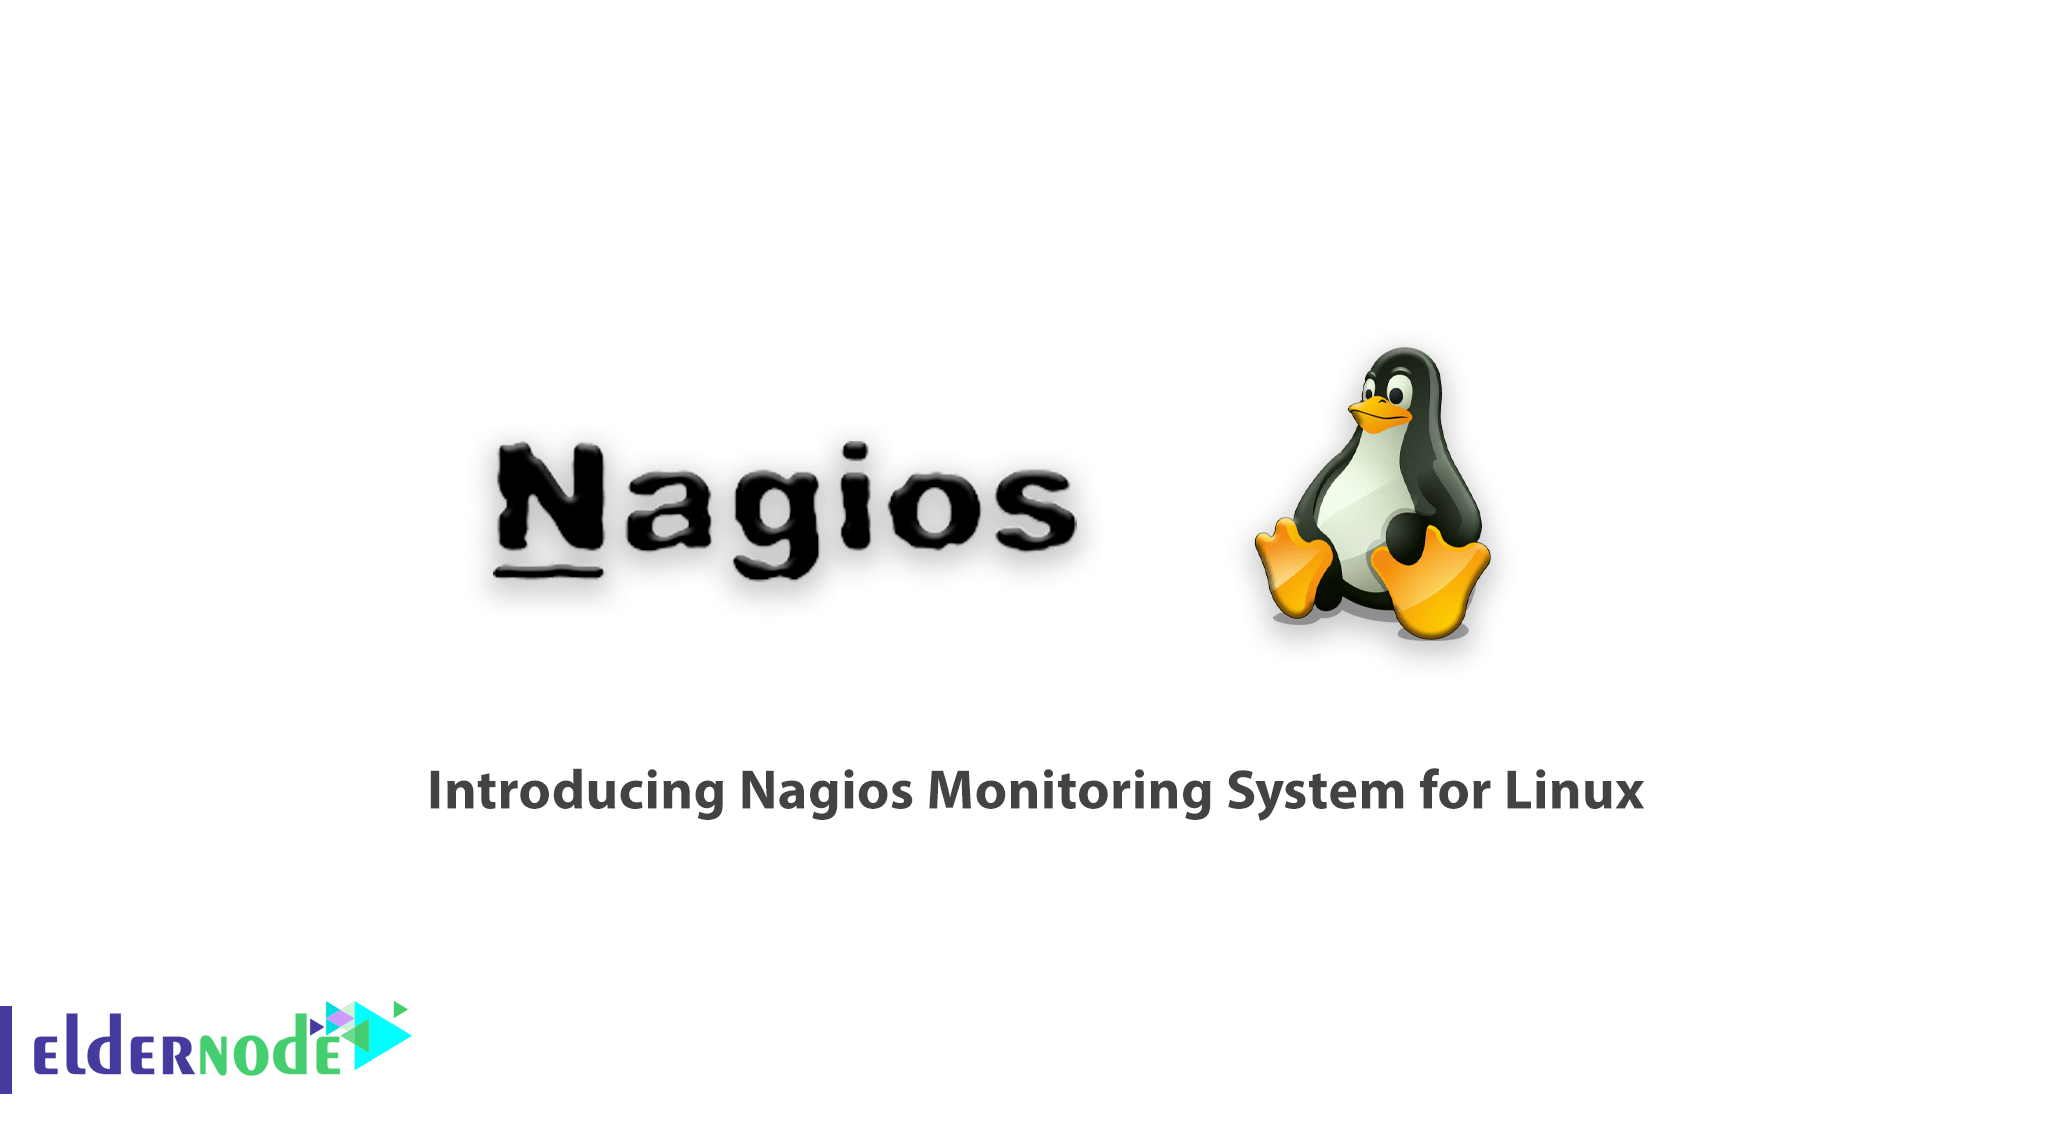 Introducing Nagios Monitoring System for Linux